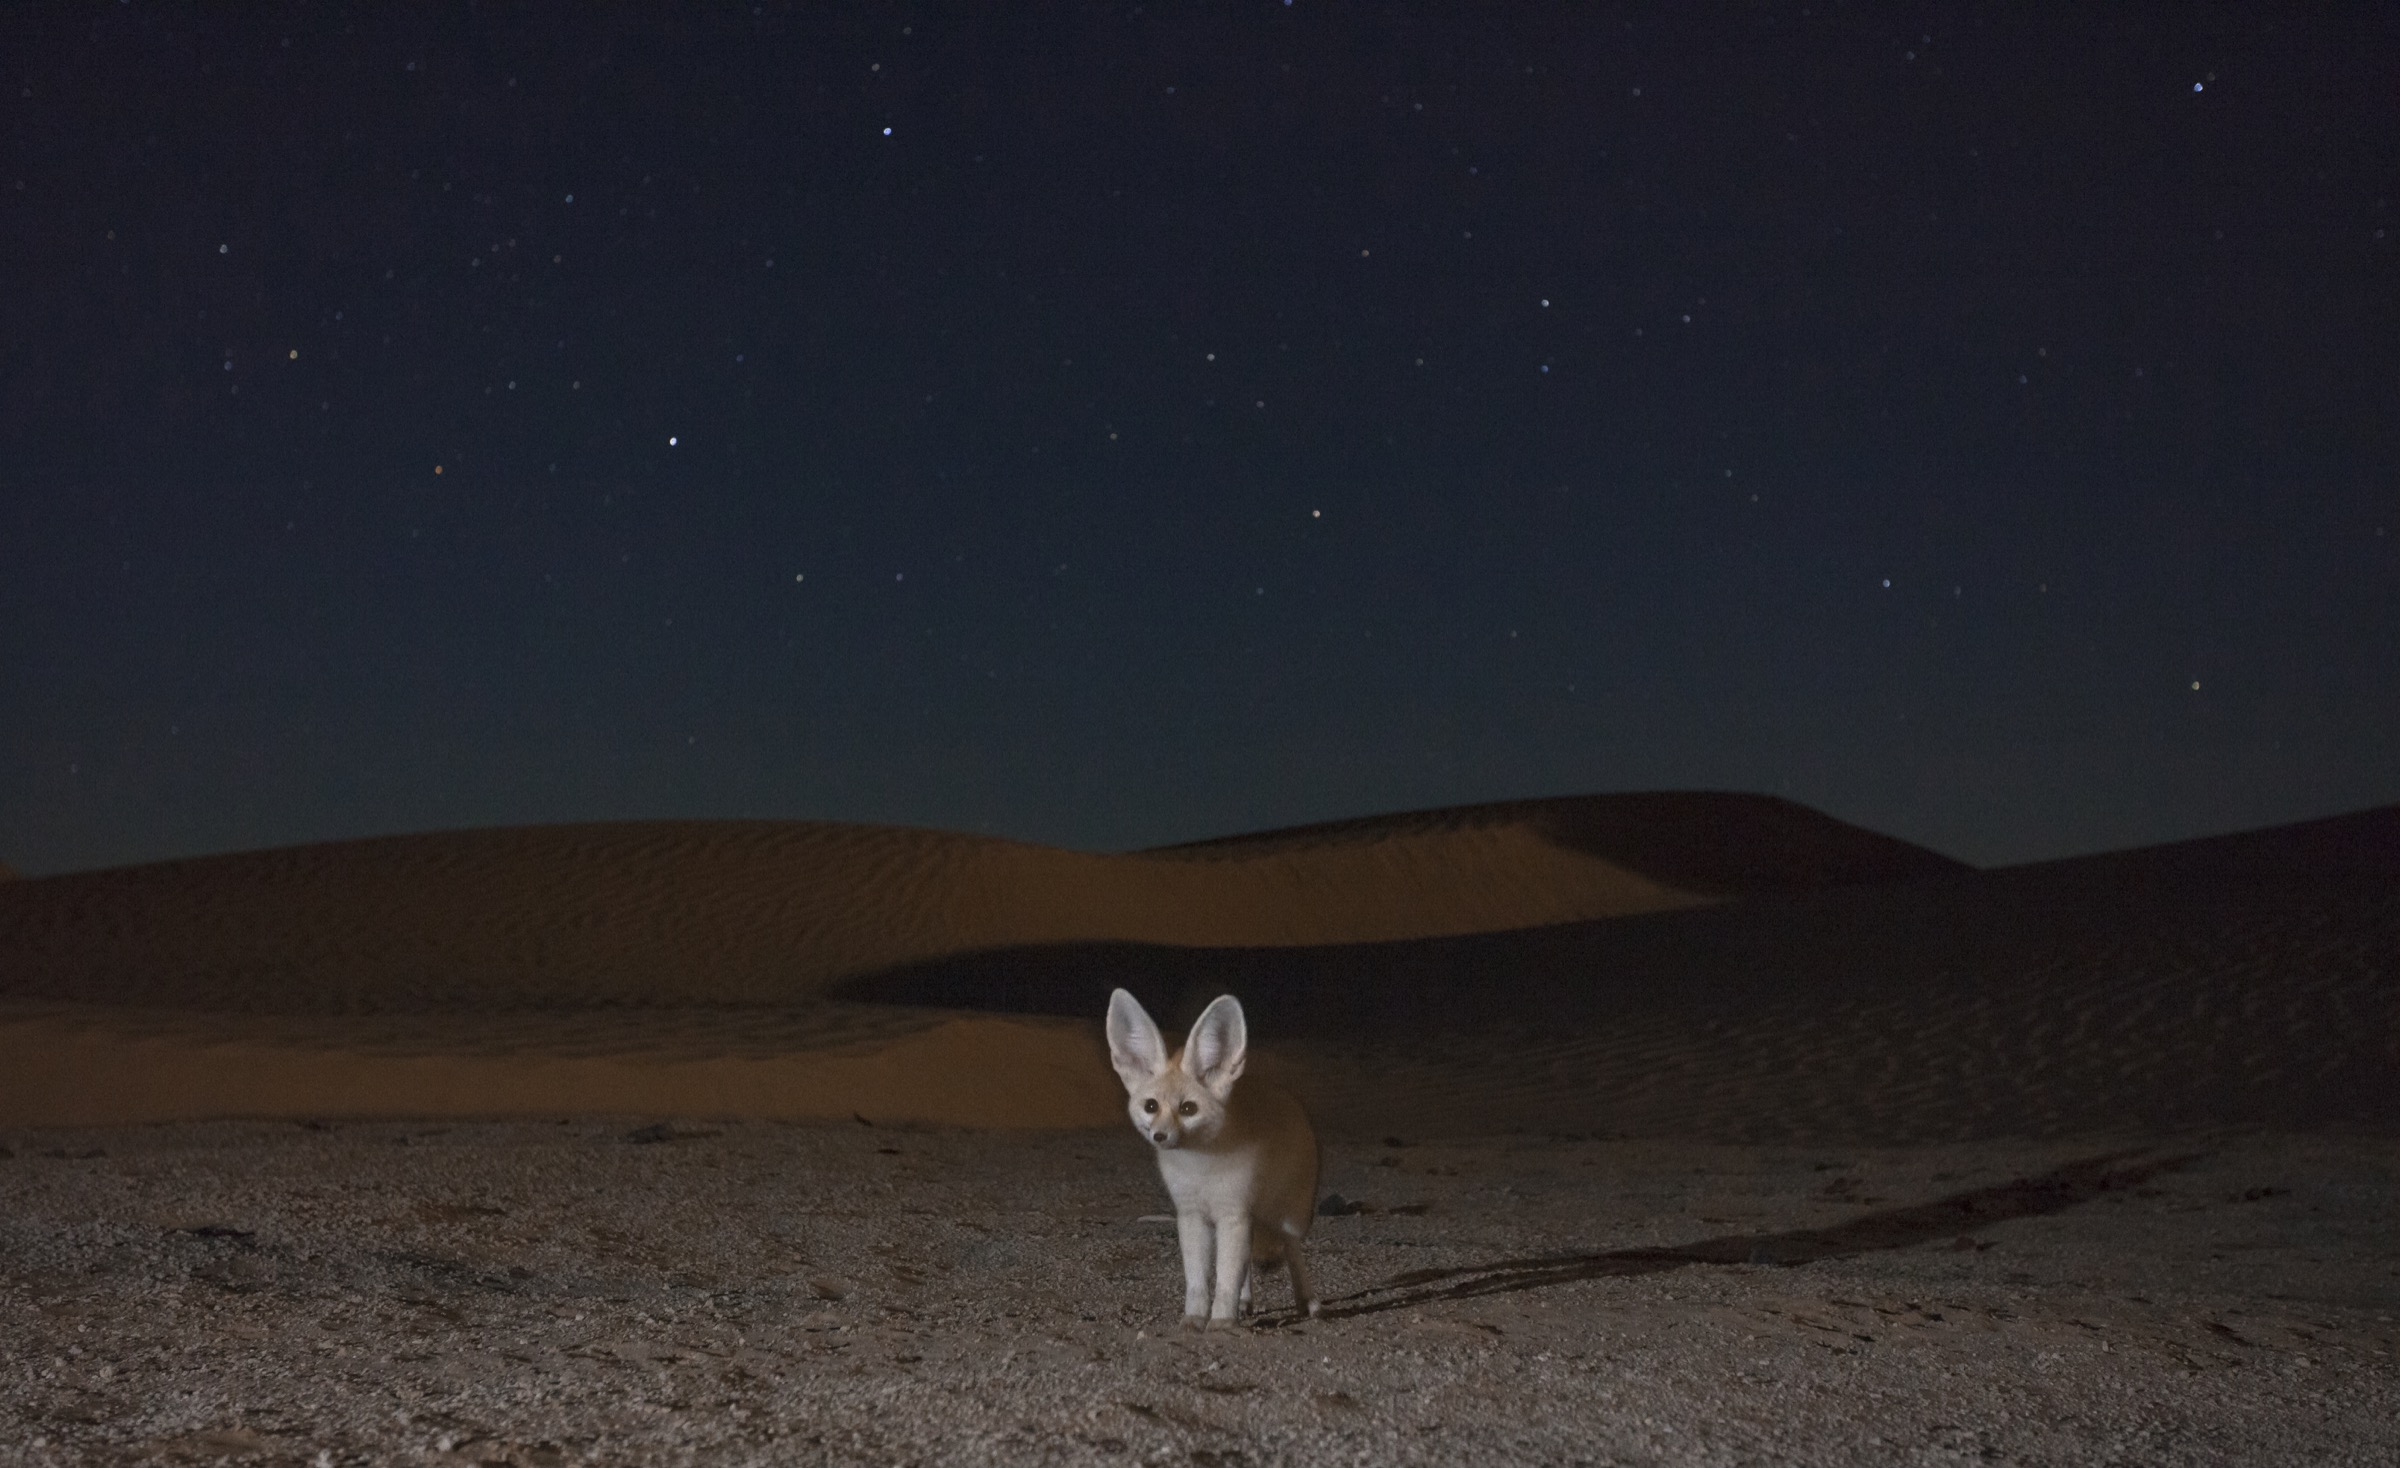 To capture this image of a fennec fox under a starry night sky, D'Amicis set up a camera trap at the entrance to a gerbil den and waited for weeks for a tiny hunter to approach.